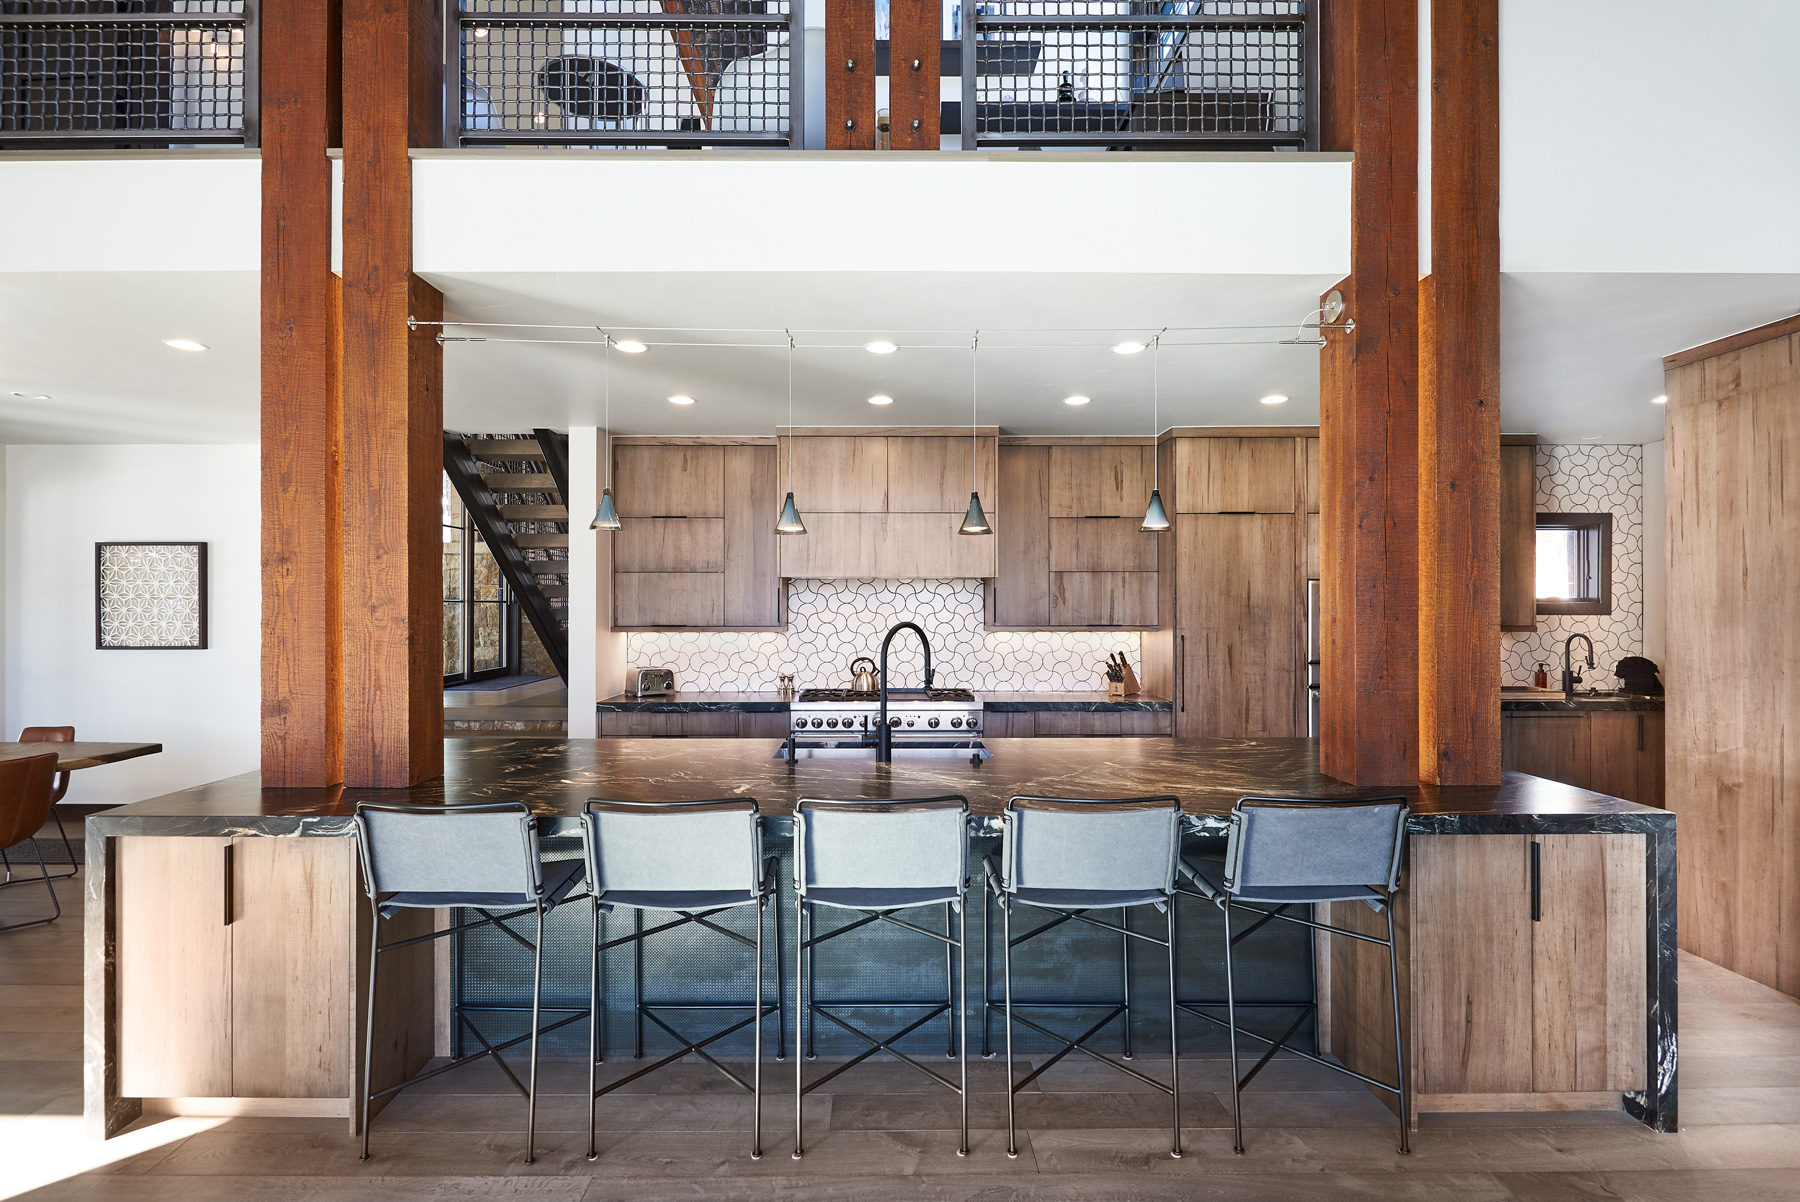 Kitchen island stool and lighting great room design.jpg